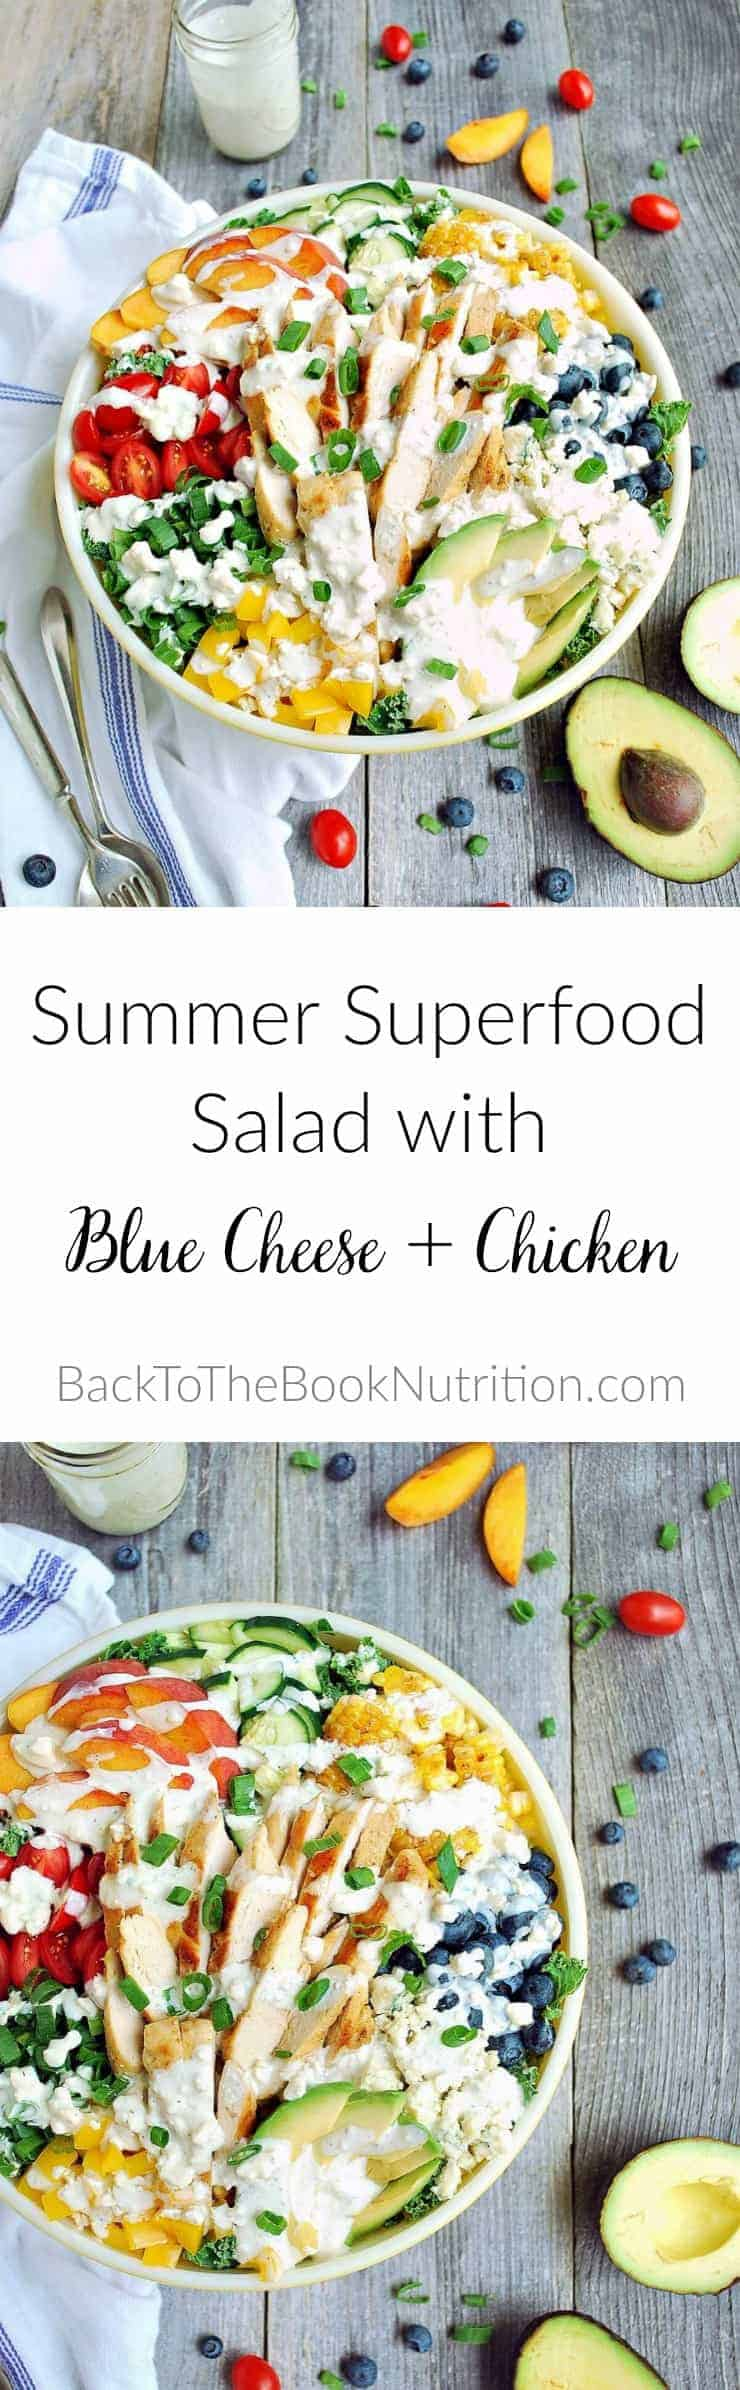 Summer Superfood Salad with blue cheese and chicken - 7 veggies + 3 fruits for antioxidants, fiber, and healthy fats. Healthy summer lunch or dinner, ready in just 30 minutes! | Back To The Book Nutrition